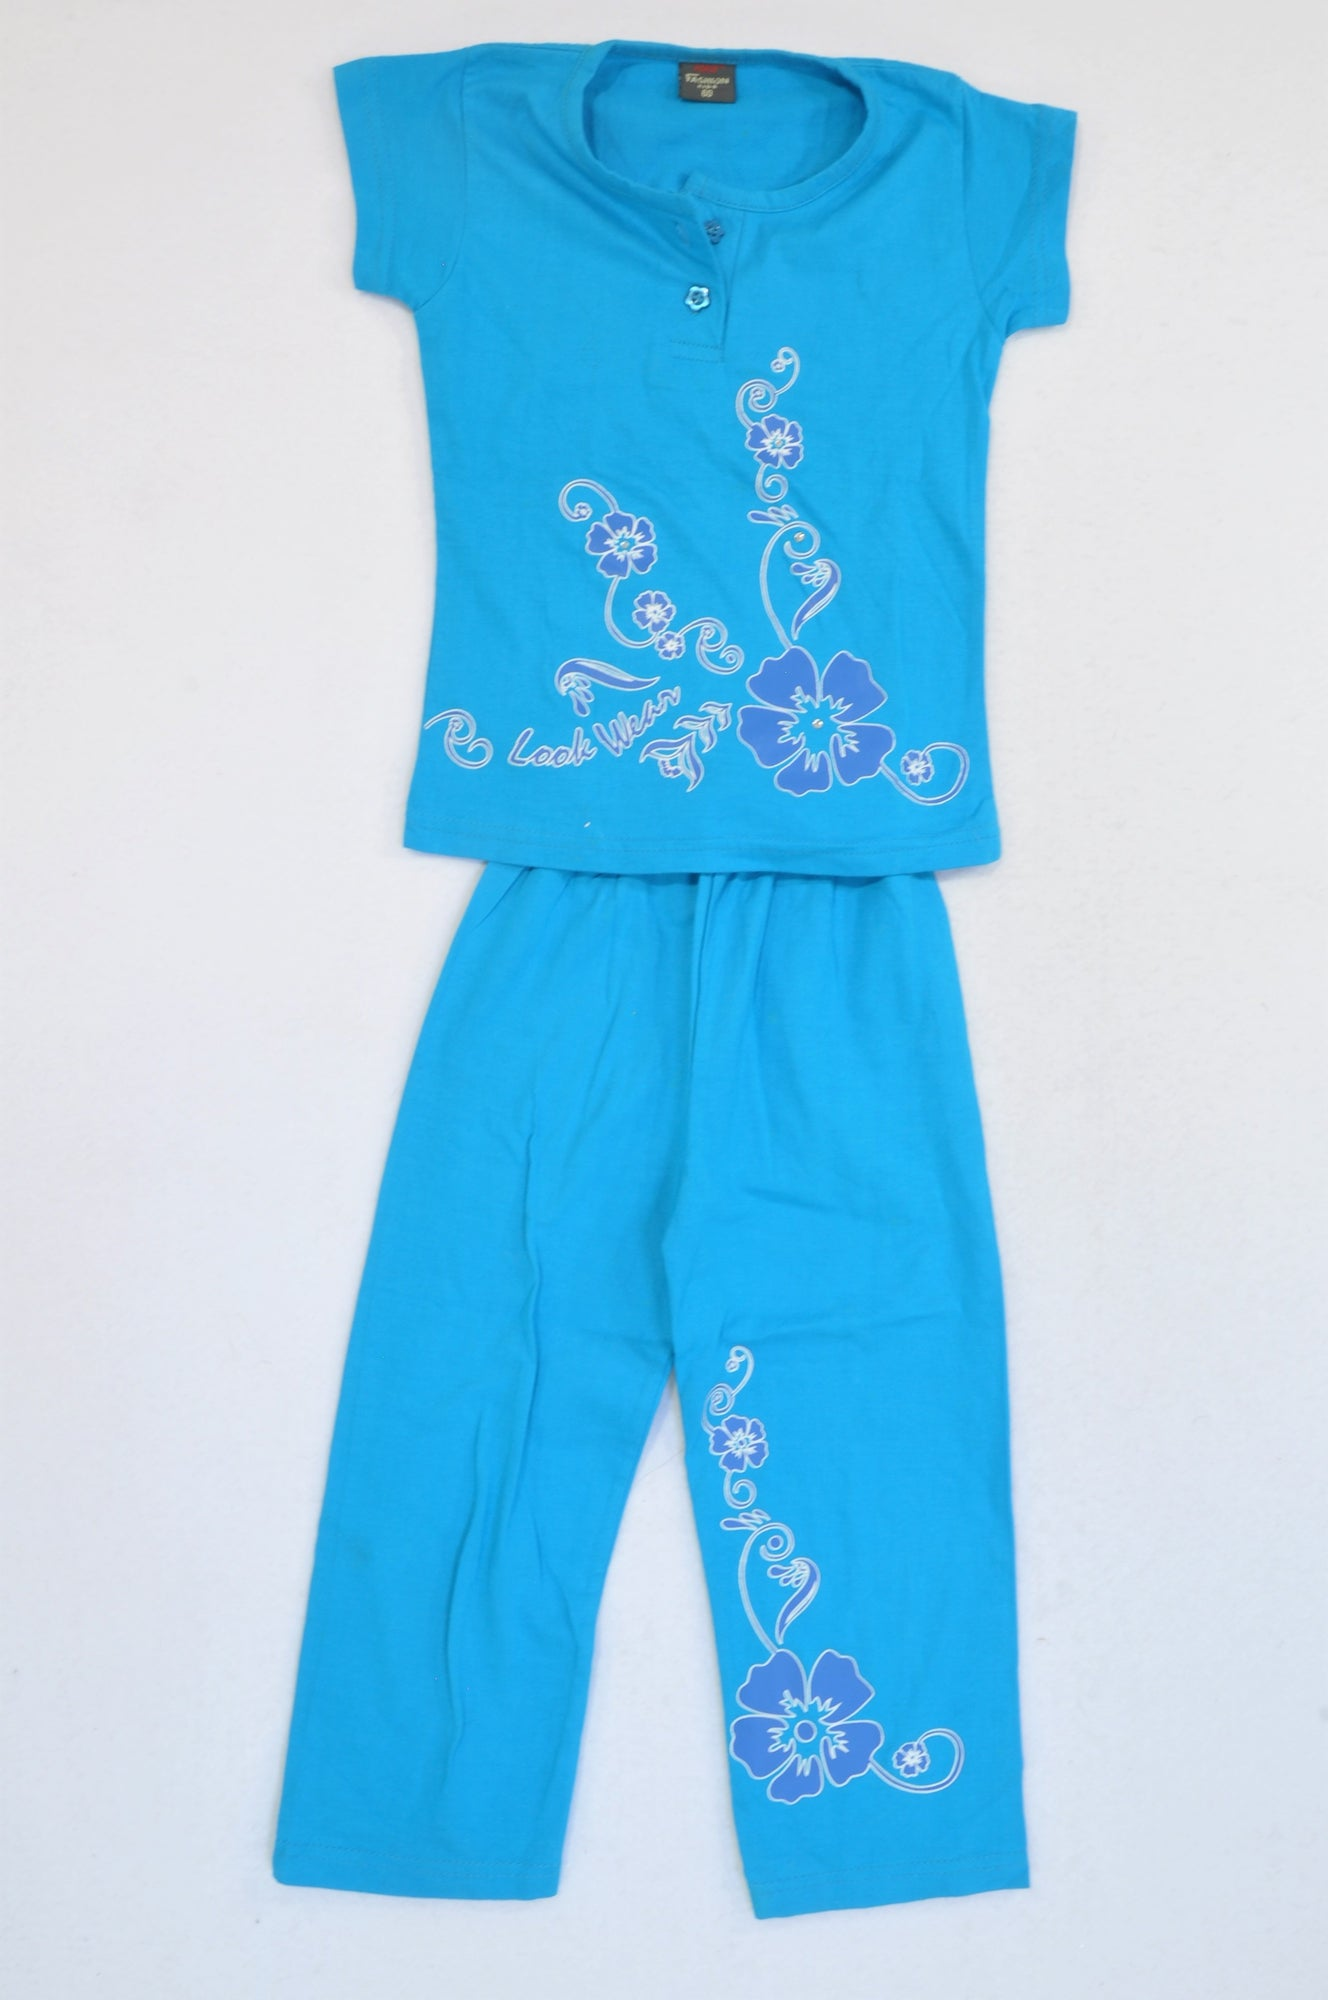 Force Fashion Blue Hibiscus Print Lounge Outfit Girls 3-4 years